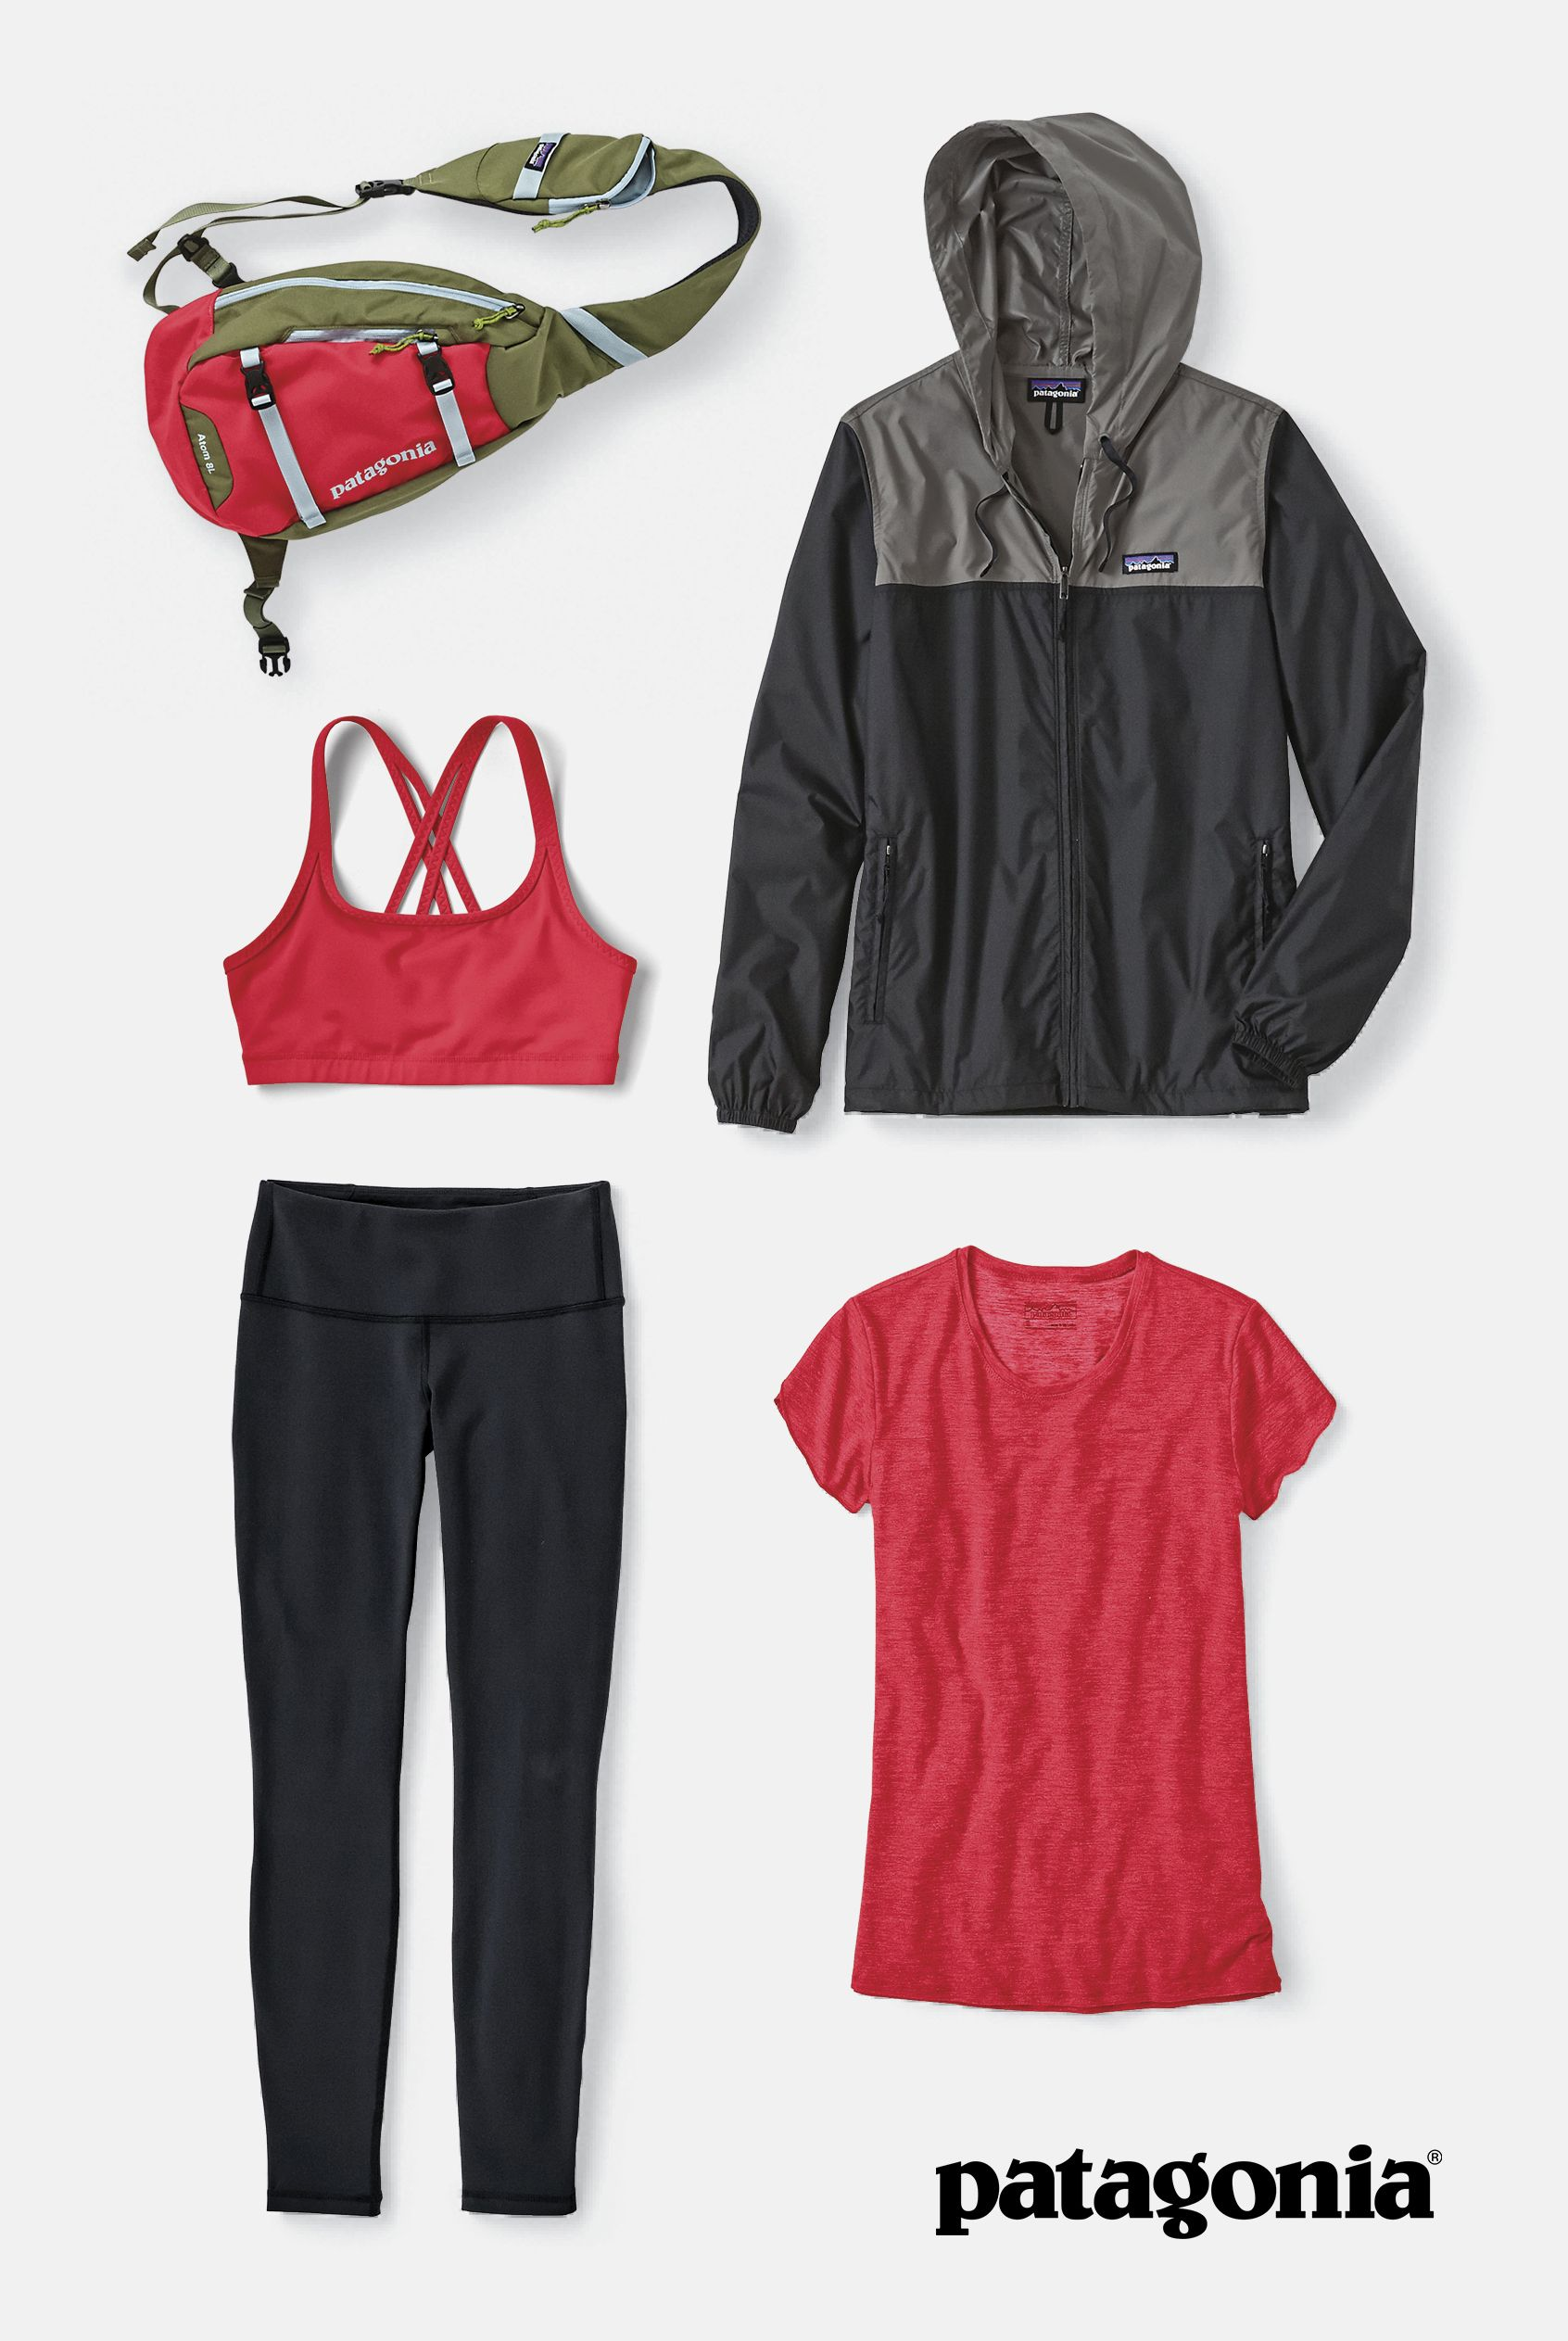 The Women's Yoga & Activewear Collection – a collection with untold hours of product testing, long lasting fabrics plus our mission to cause the least harm. (clockwise from top left) The Atom Sling 8L, Light & Variable Hoody, Glorya Tee, Centered Tights and Cordelisse Bra. Begin gathering your collection today.